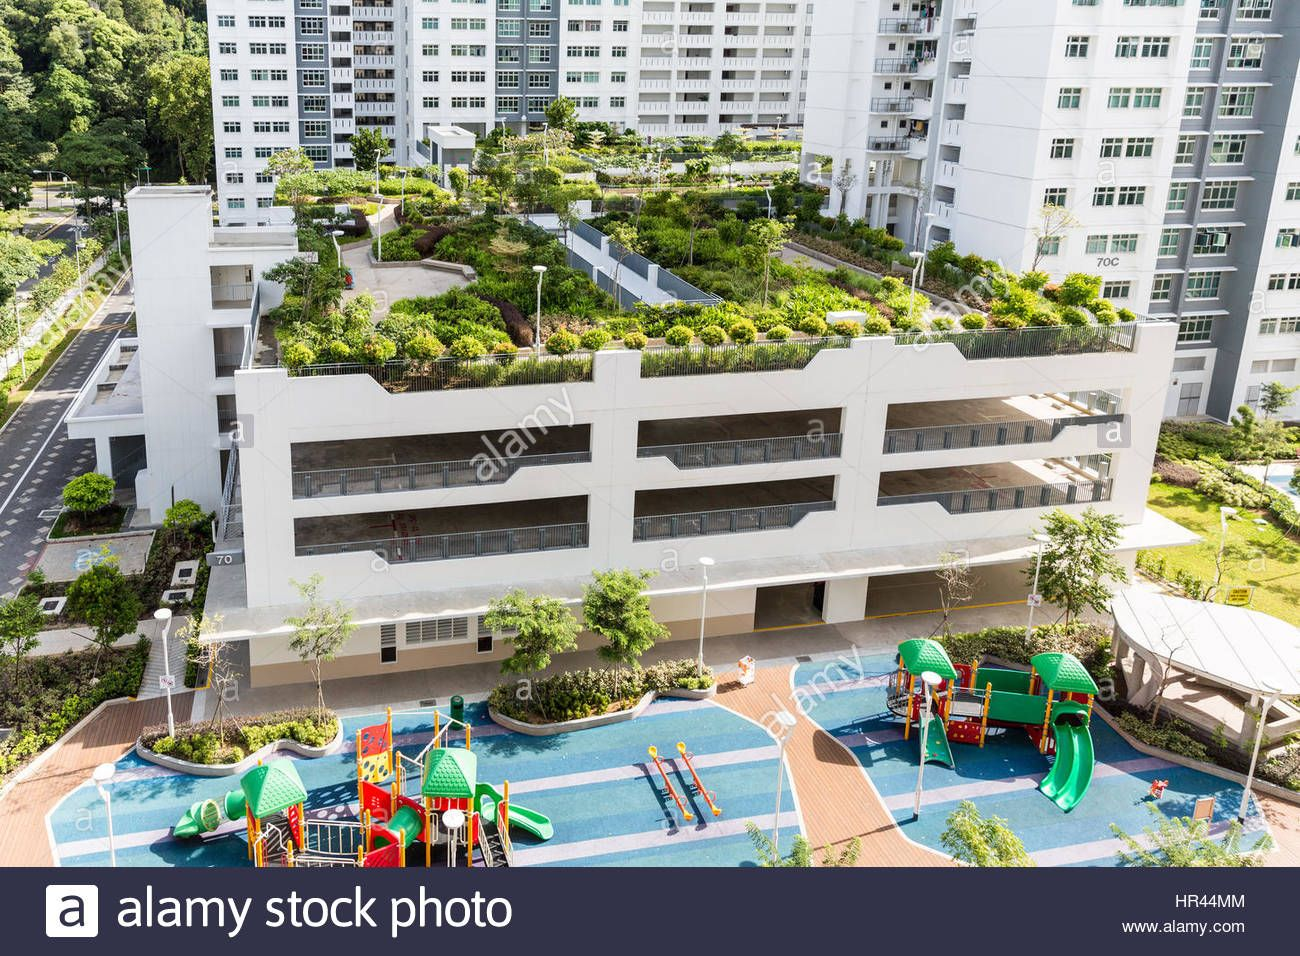 Rooftop Gardens Feature In New Public Hdp Apartments In Singapore Stock Photo Royalty Free In 2020 Garden Features Blue Garden Furniture Cheap Gazebo